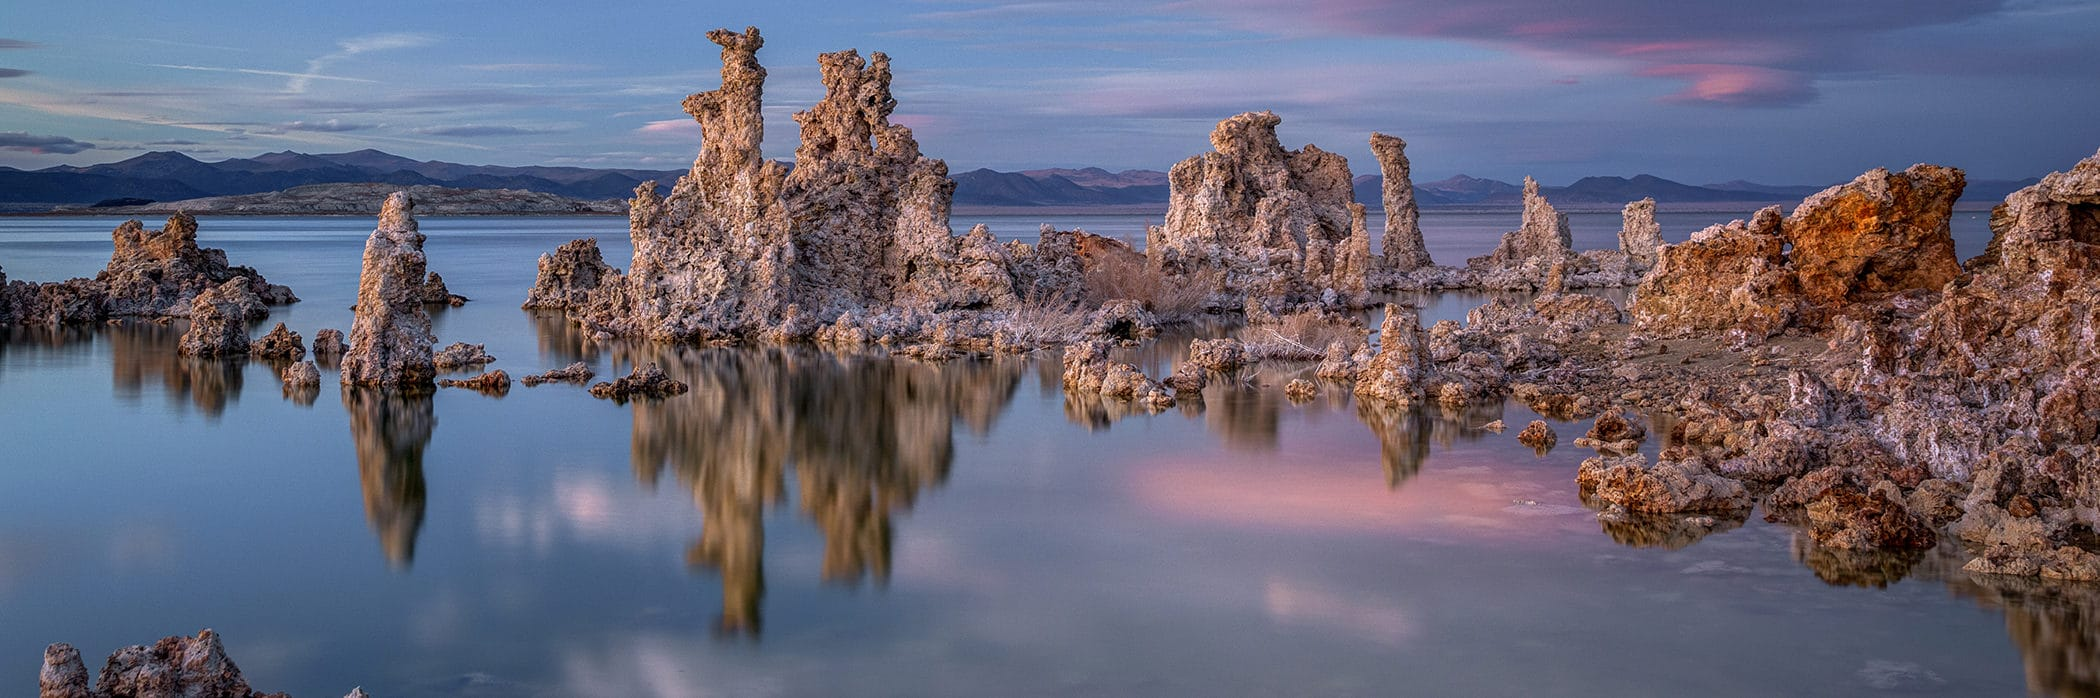 Tufa towers emerging from Mono Lake at sunset with blue skies and unusual clouds lit up in soft pink with beautiful soft light on the tufa towers reflected in the lake's surface, and you can even see some of the rocky shoreline under water.